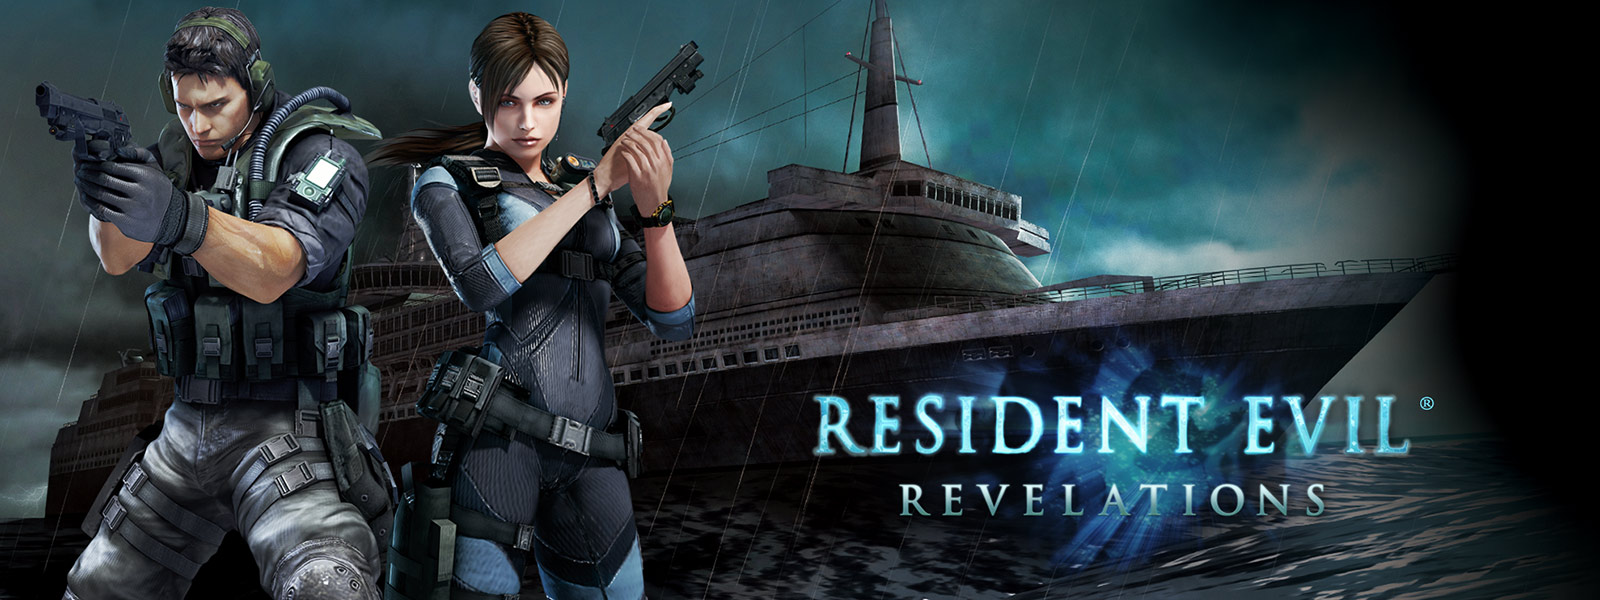 Resident Evil Revelations, two characters holding pistols in front of a ghostly looking cruise ship